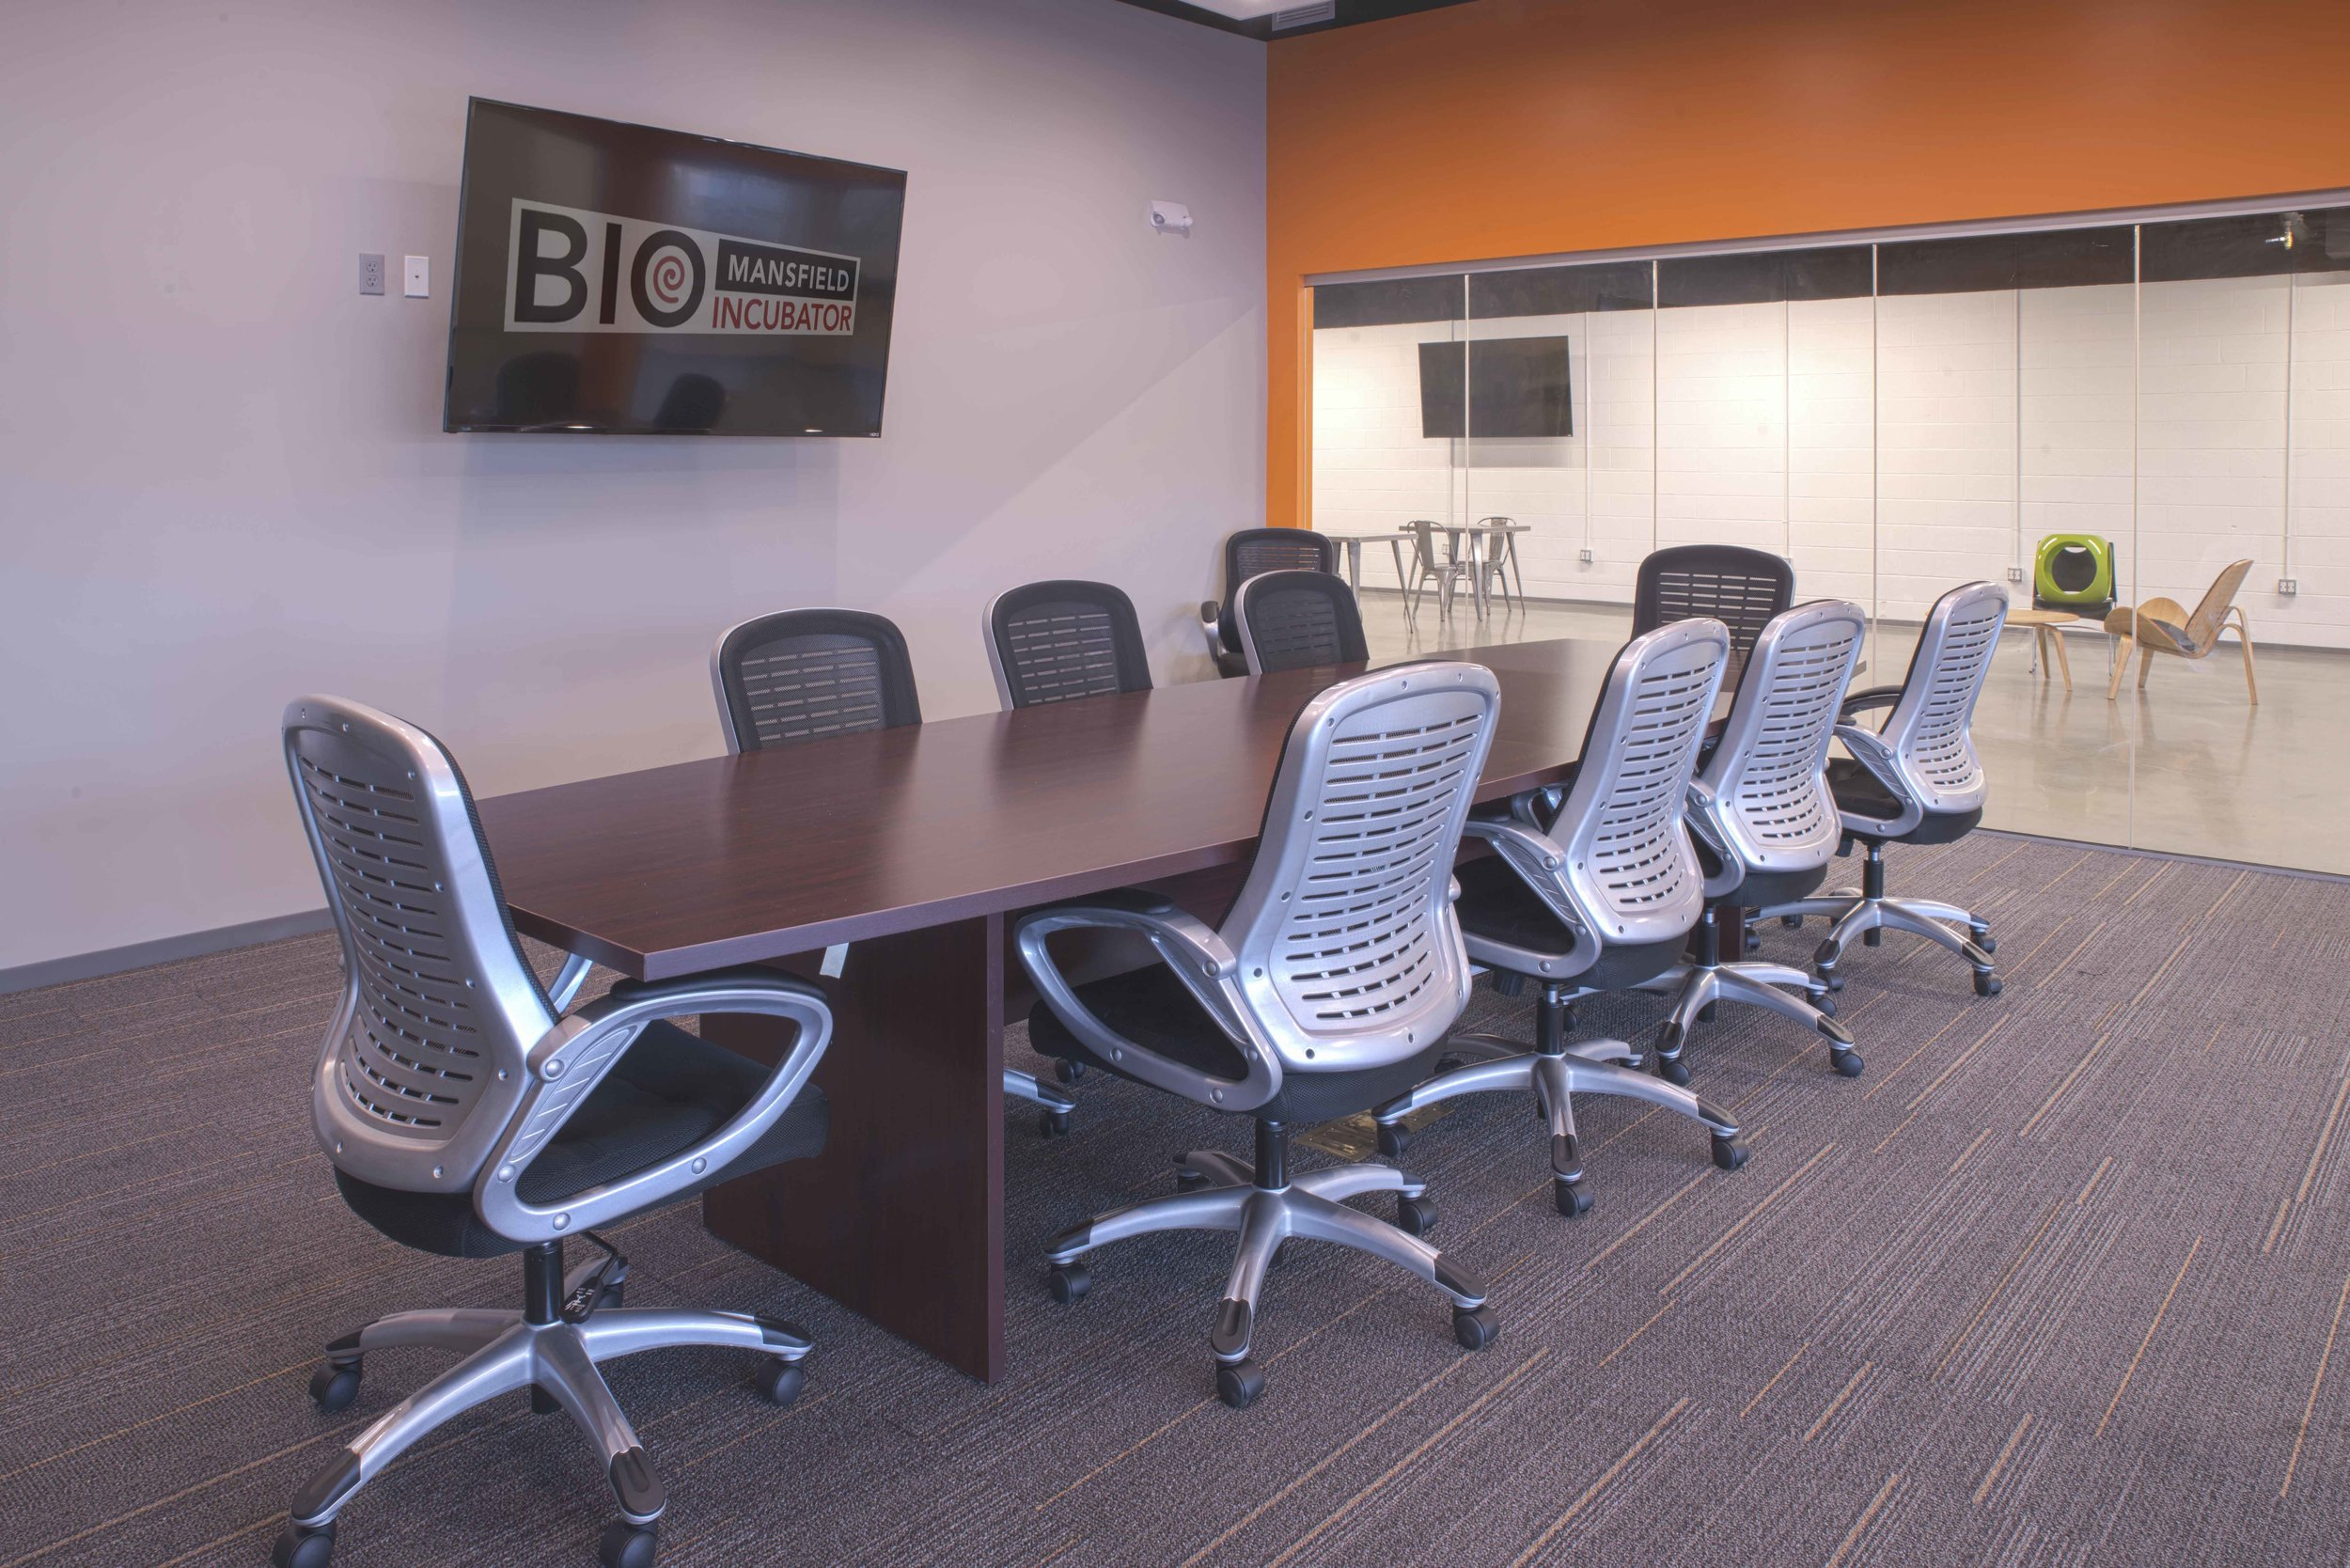 Conference room, interior.